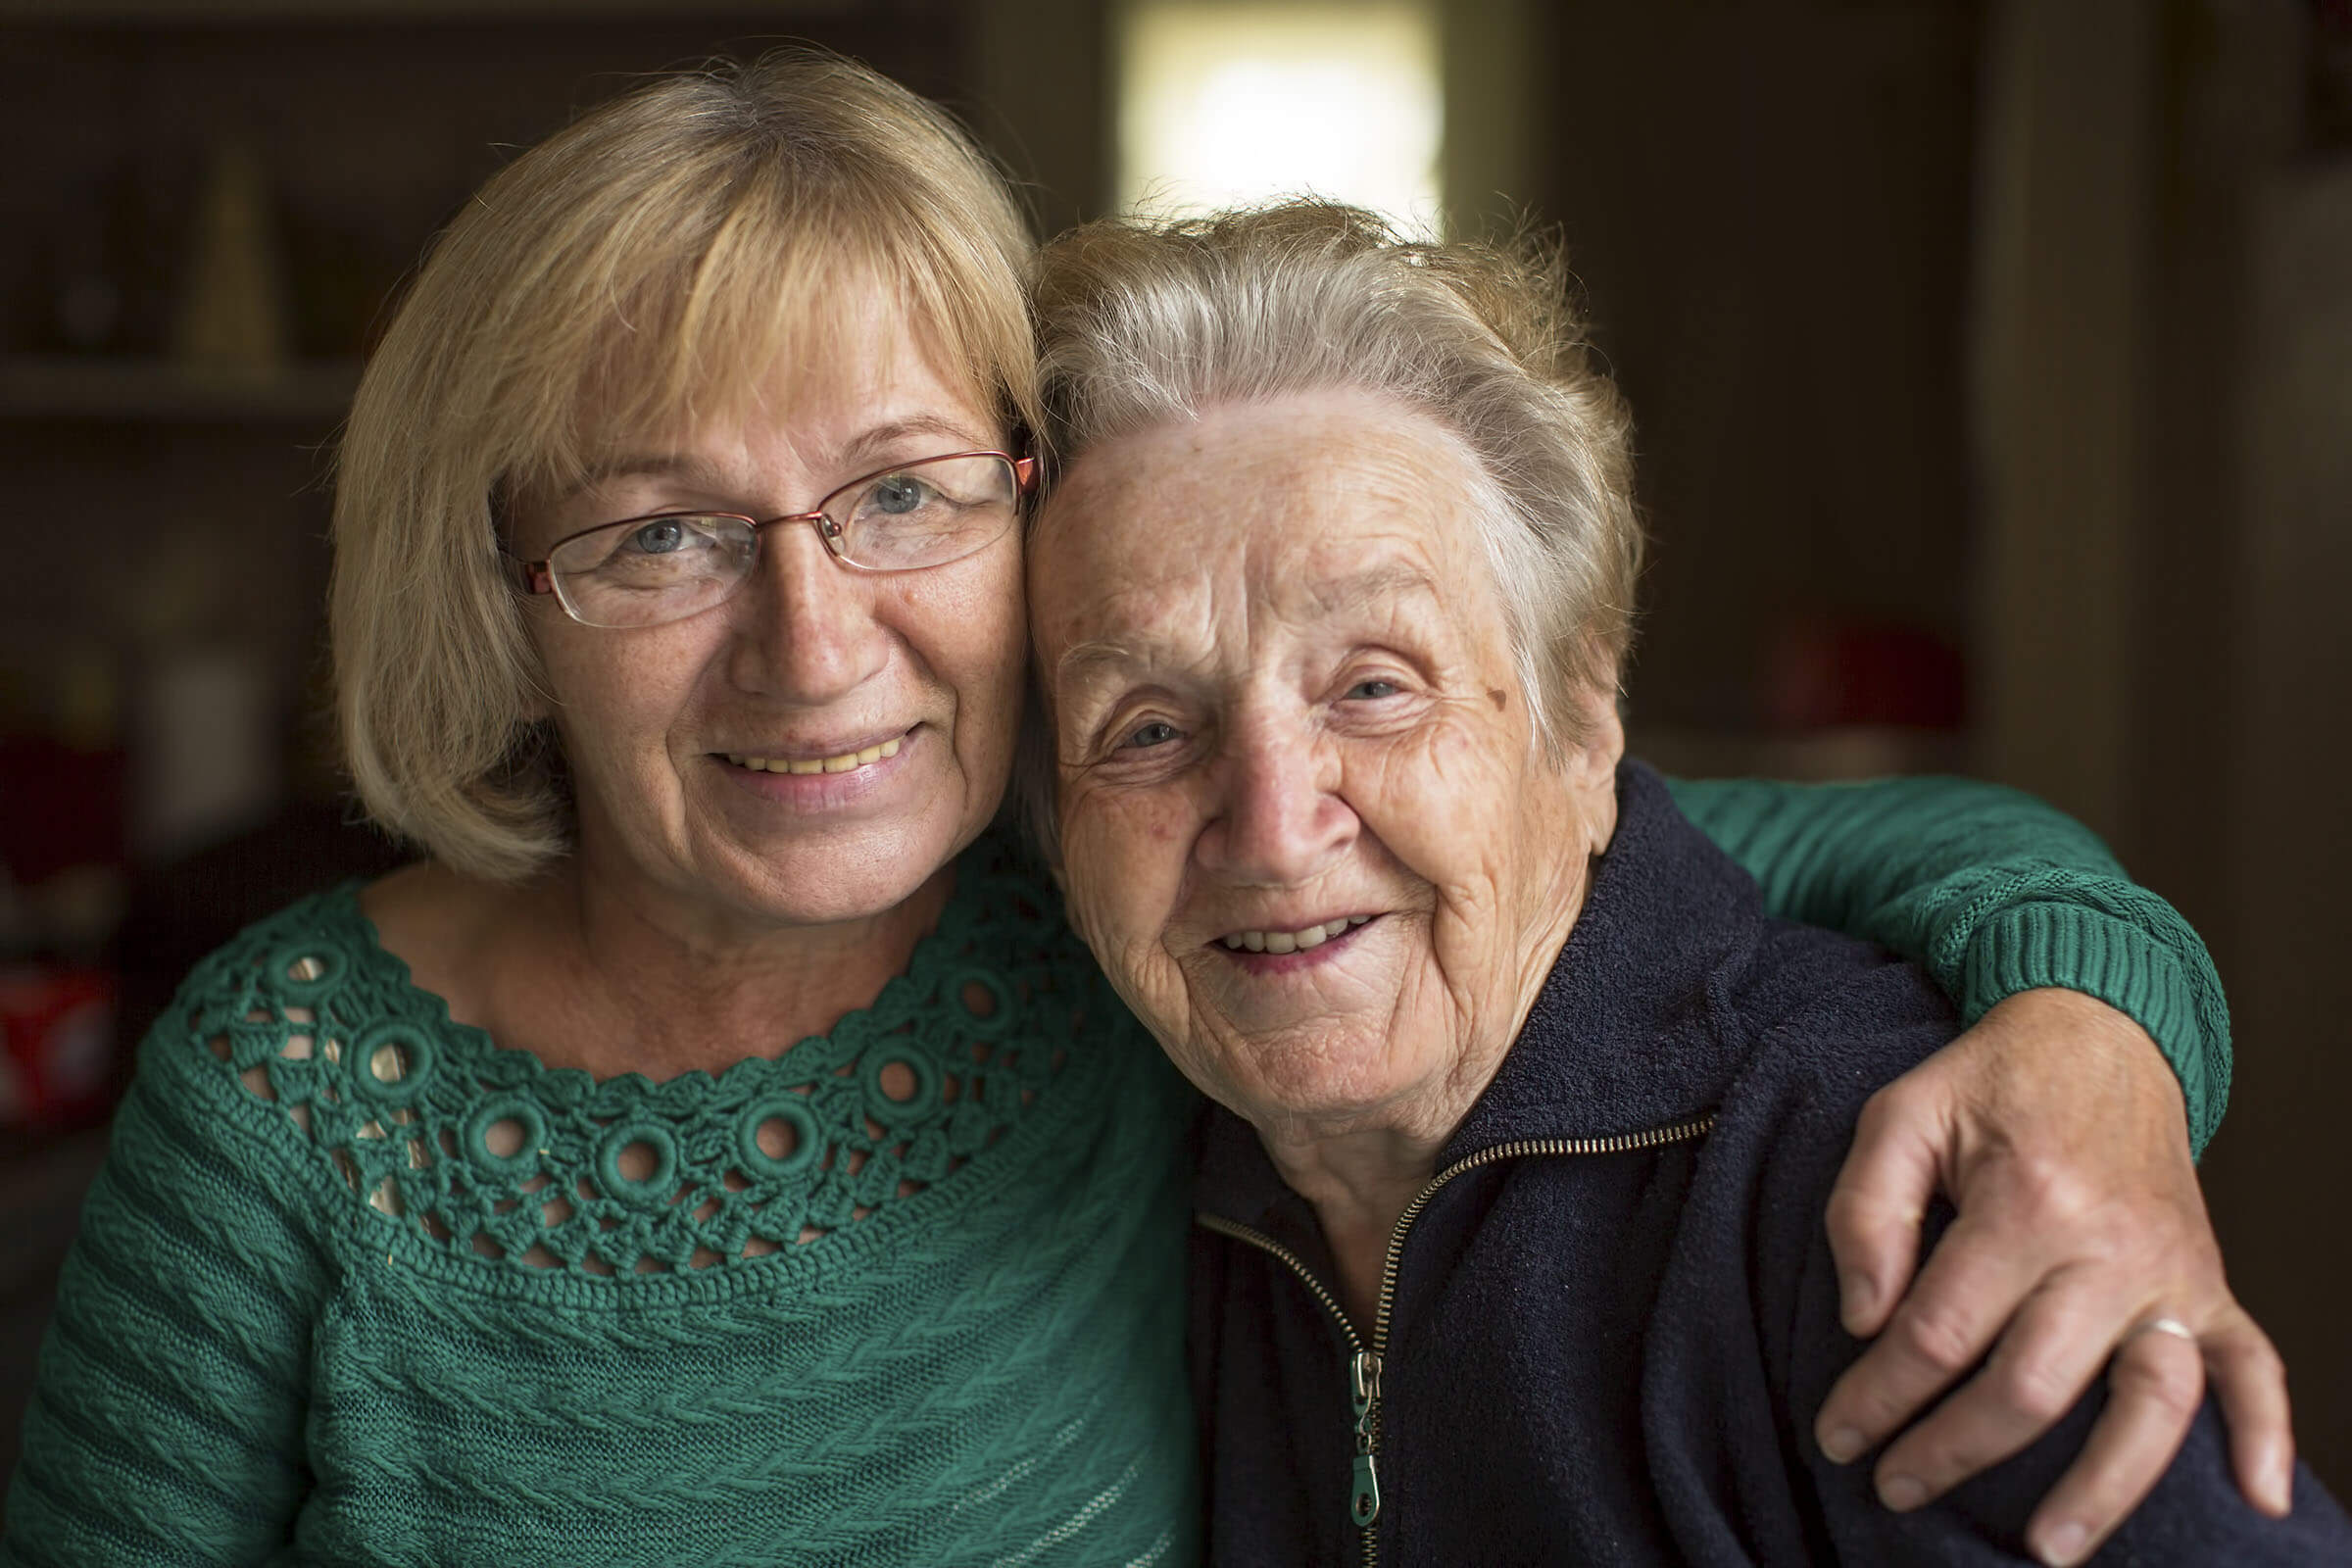 Two older women embracing one another